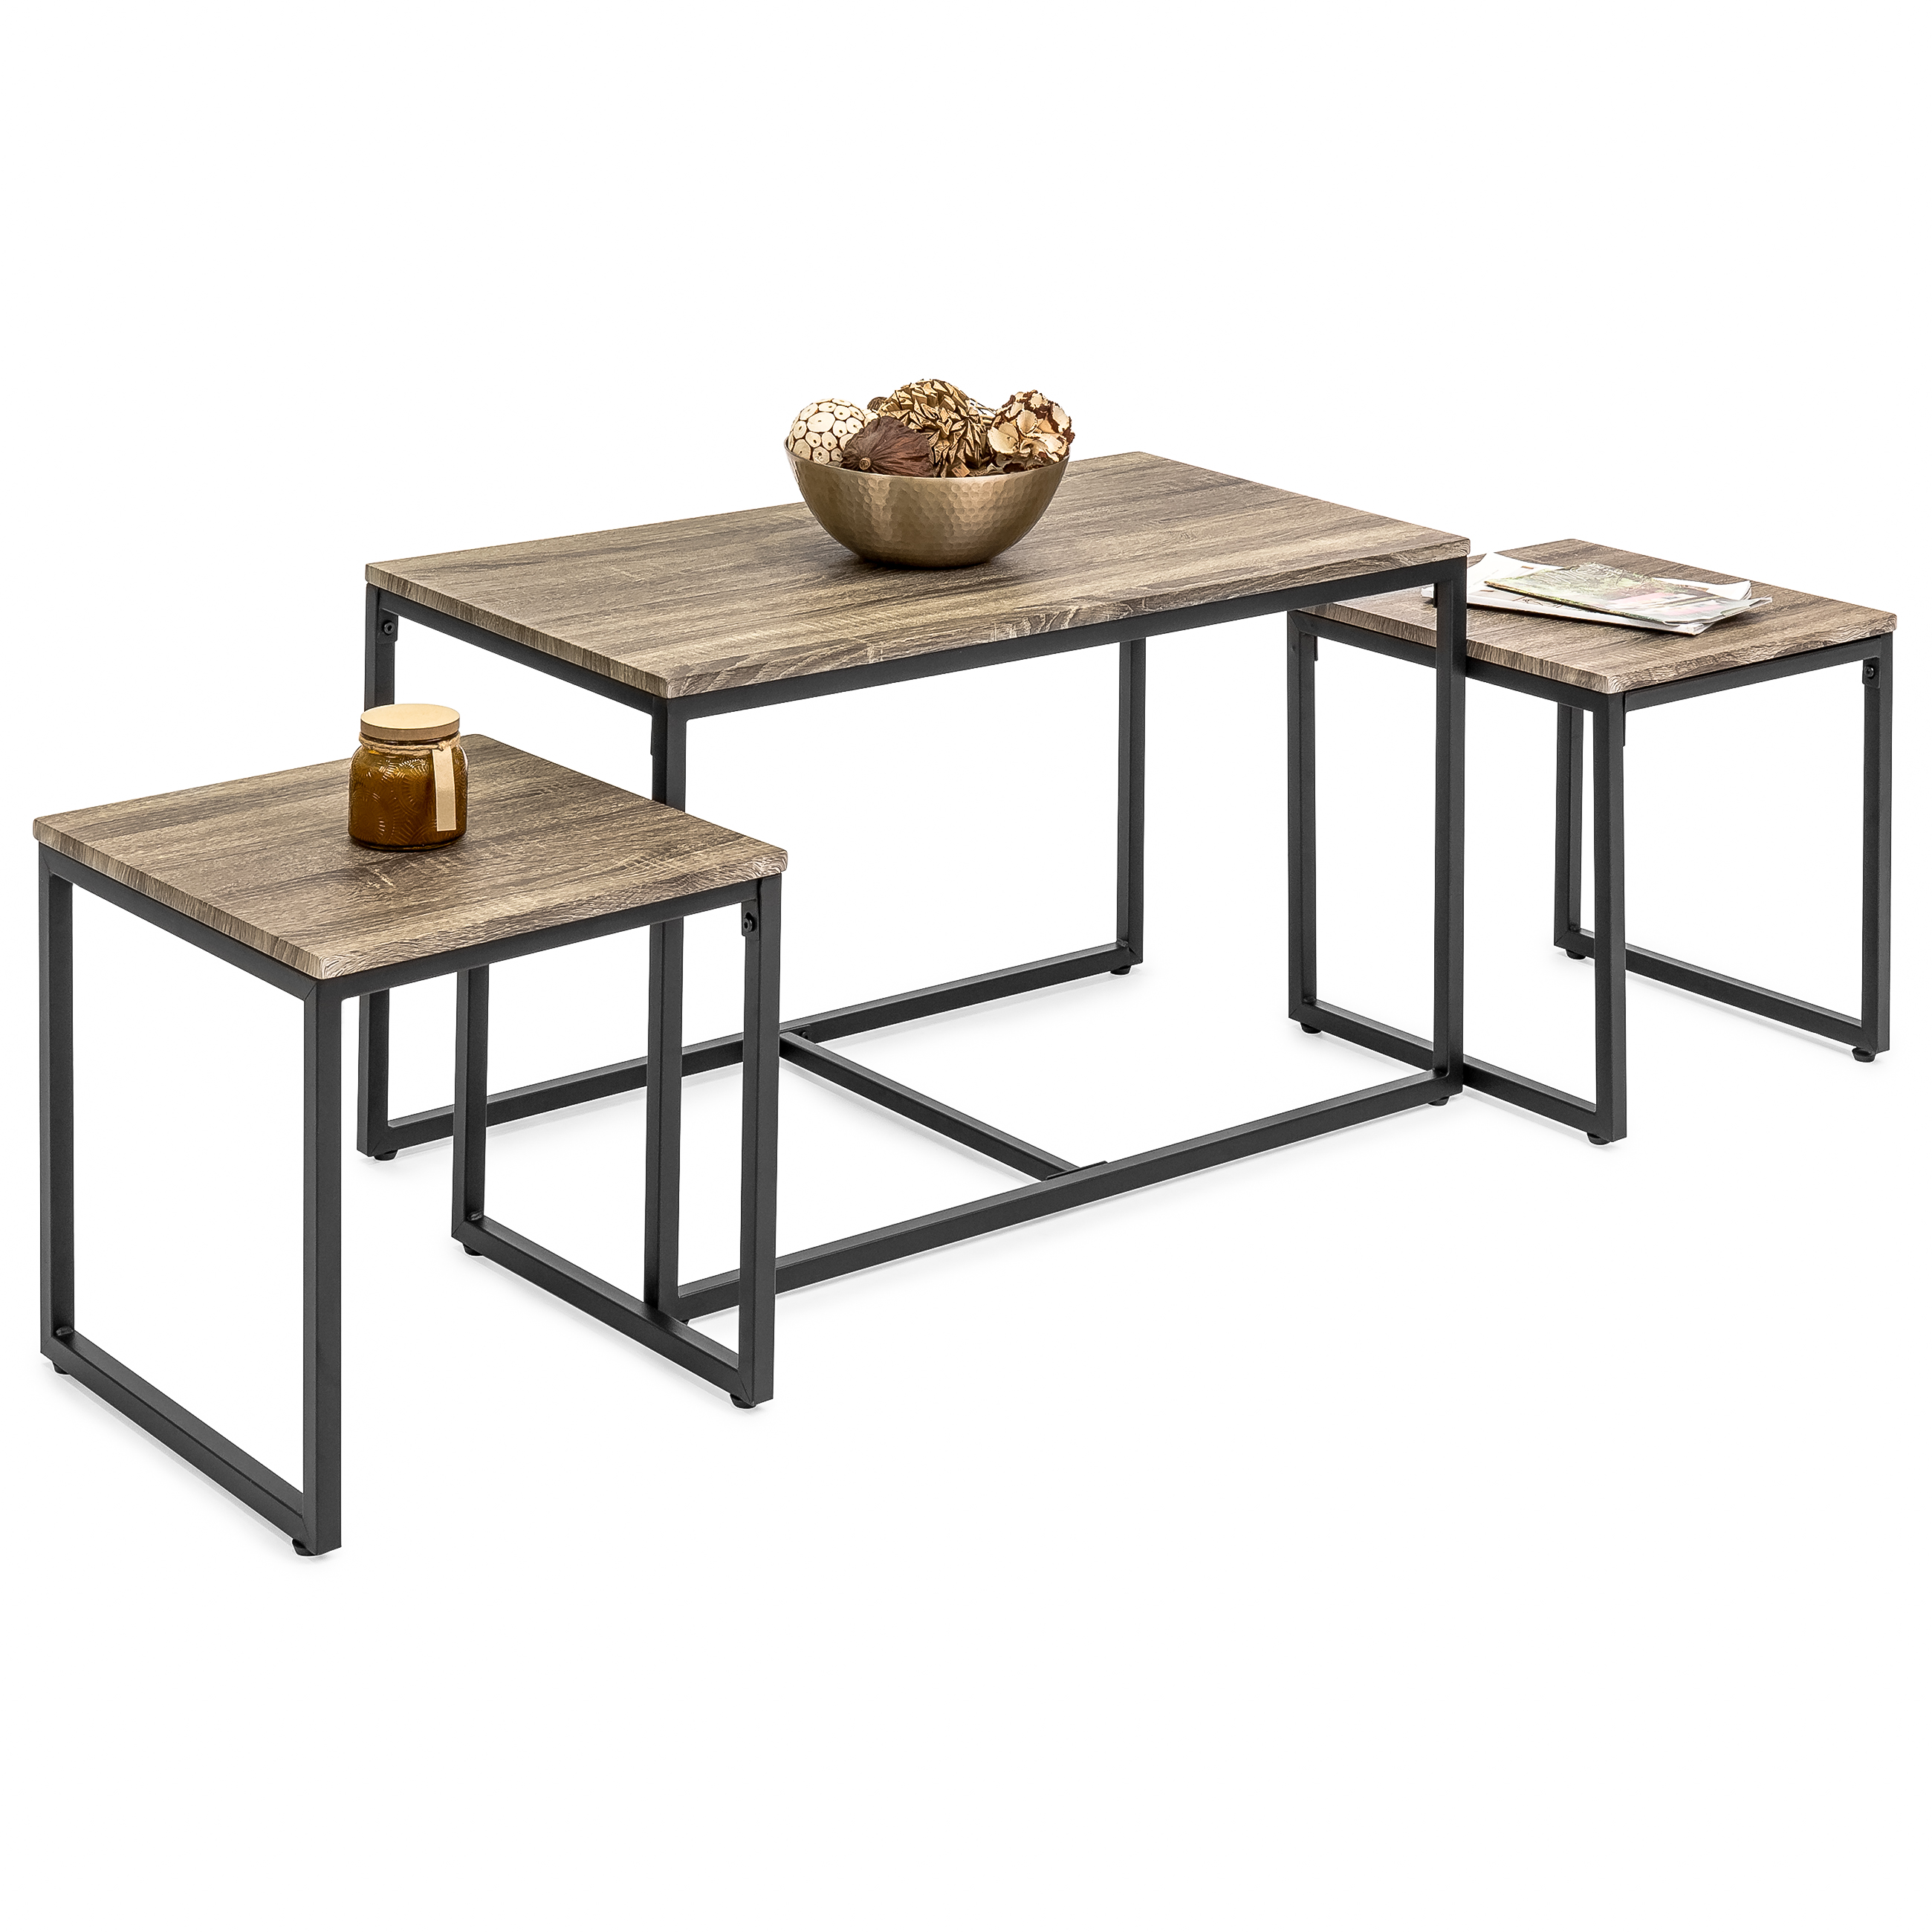 bestchoiceproducts best choice products piece modern nesting living room accent table sets coffee furniture lounge set accessory tables retailers patio dining clearance small